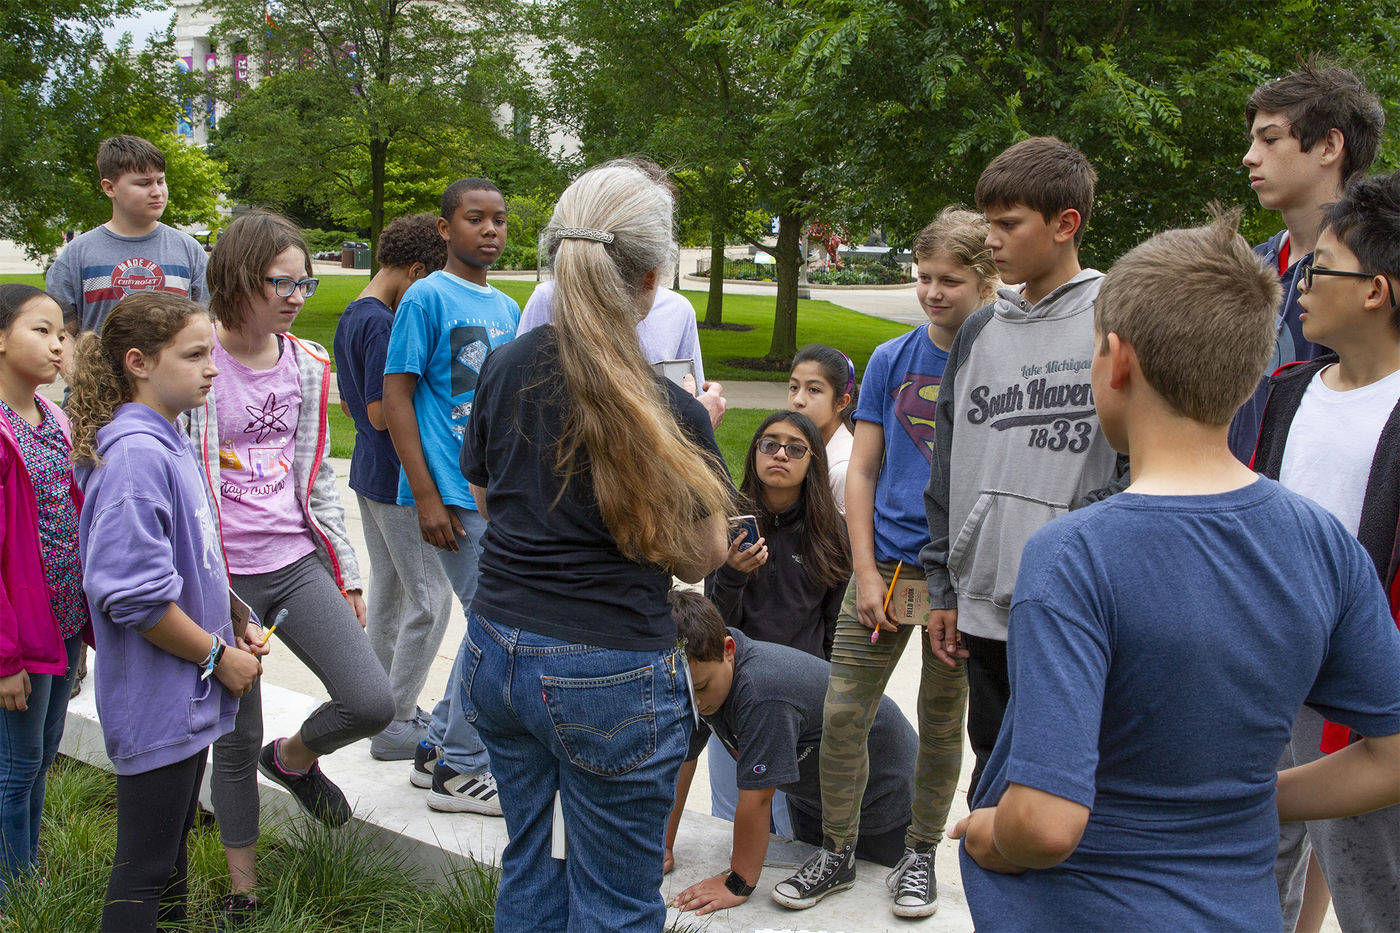 A group of Tween Camp participants gather outside to listen to a woman speak. The women's face is not visible. Some participants stand behind her on grass. Others stand in front of her on a sidewalk.